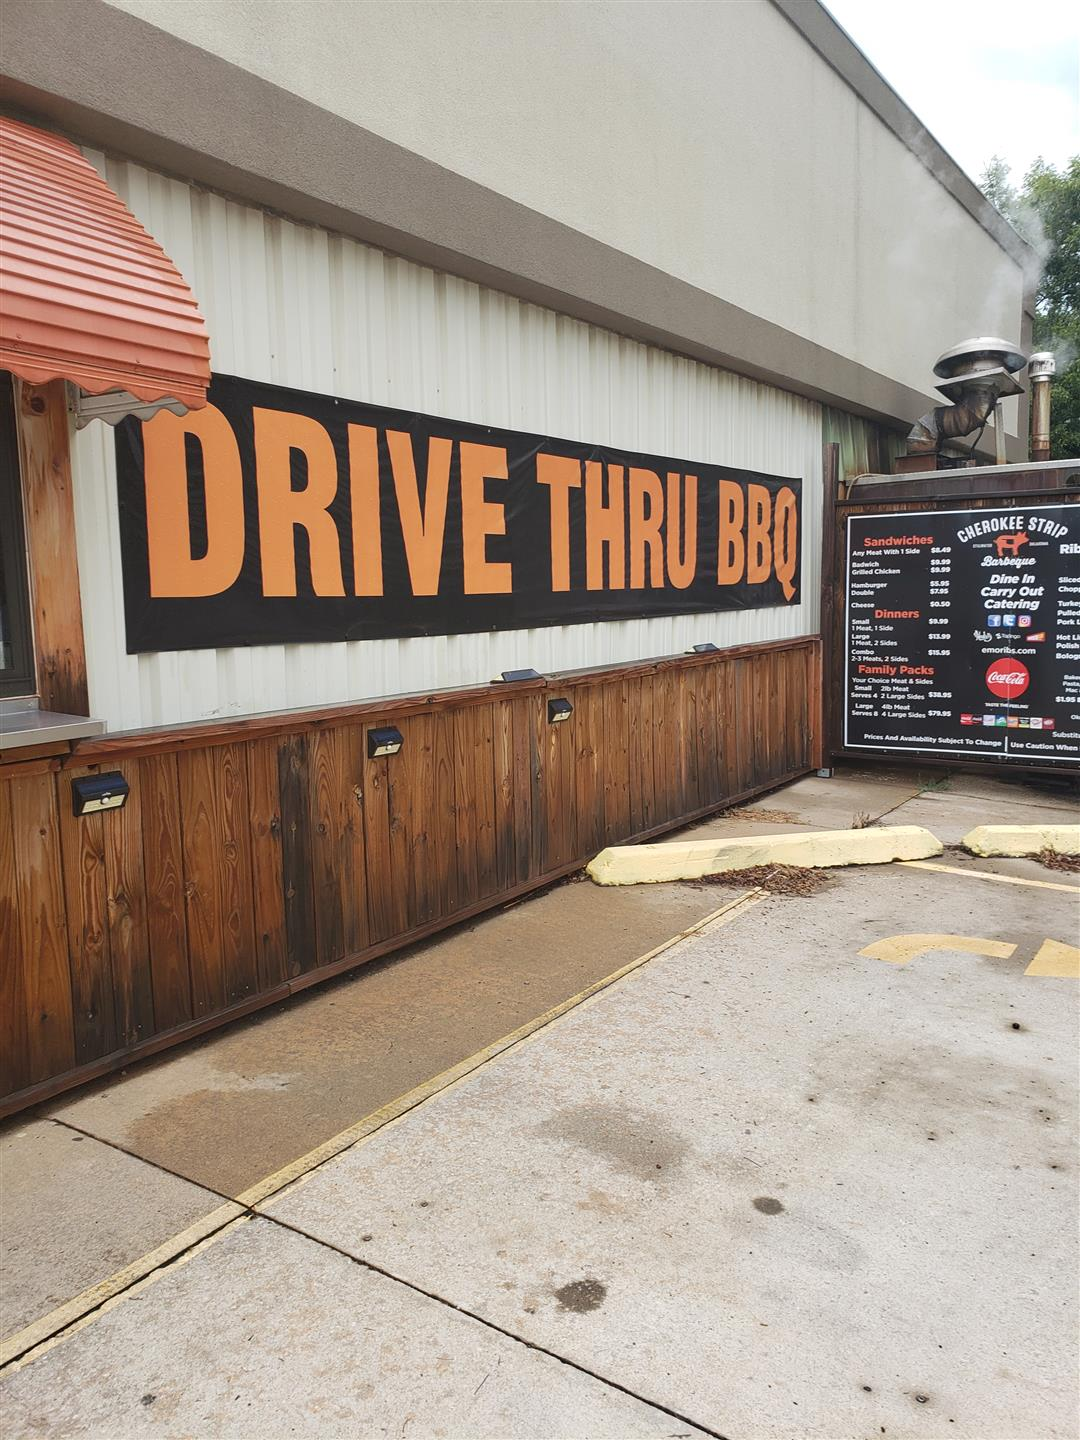 "exterior building signage that says 'drive thru bbq"" along with the drive thru menu for cars to see"